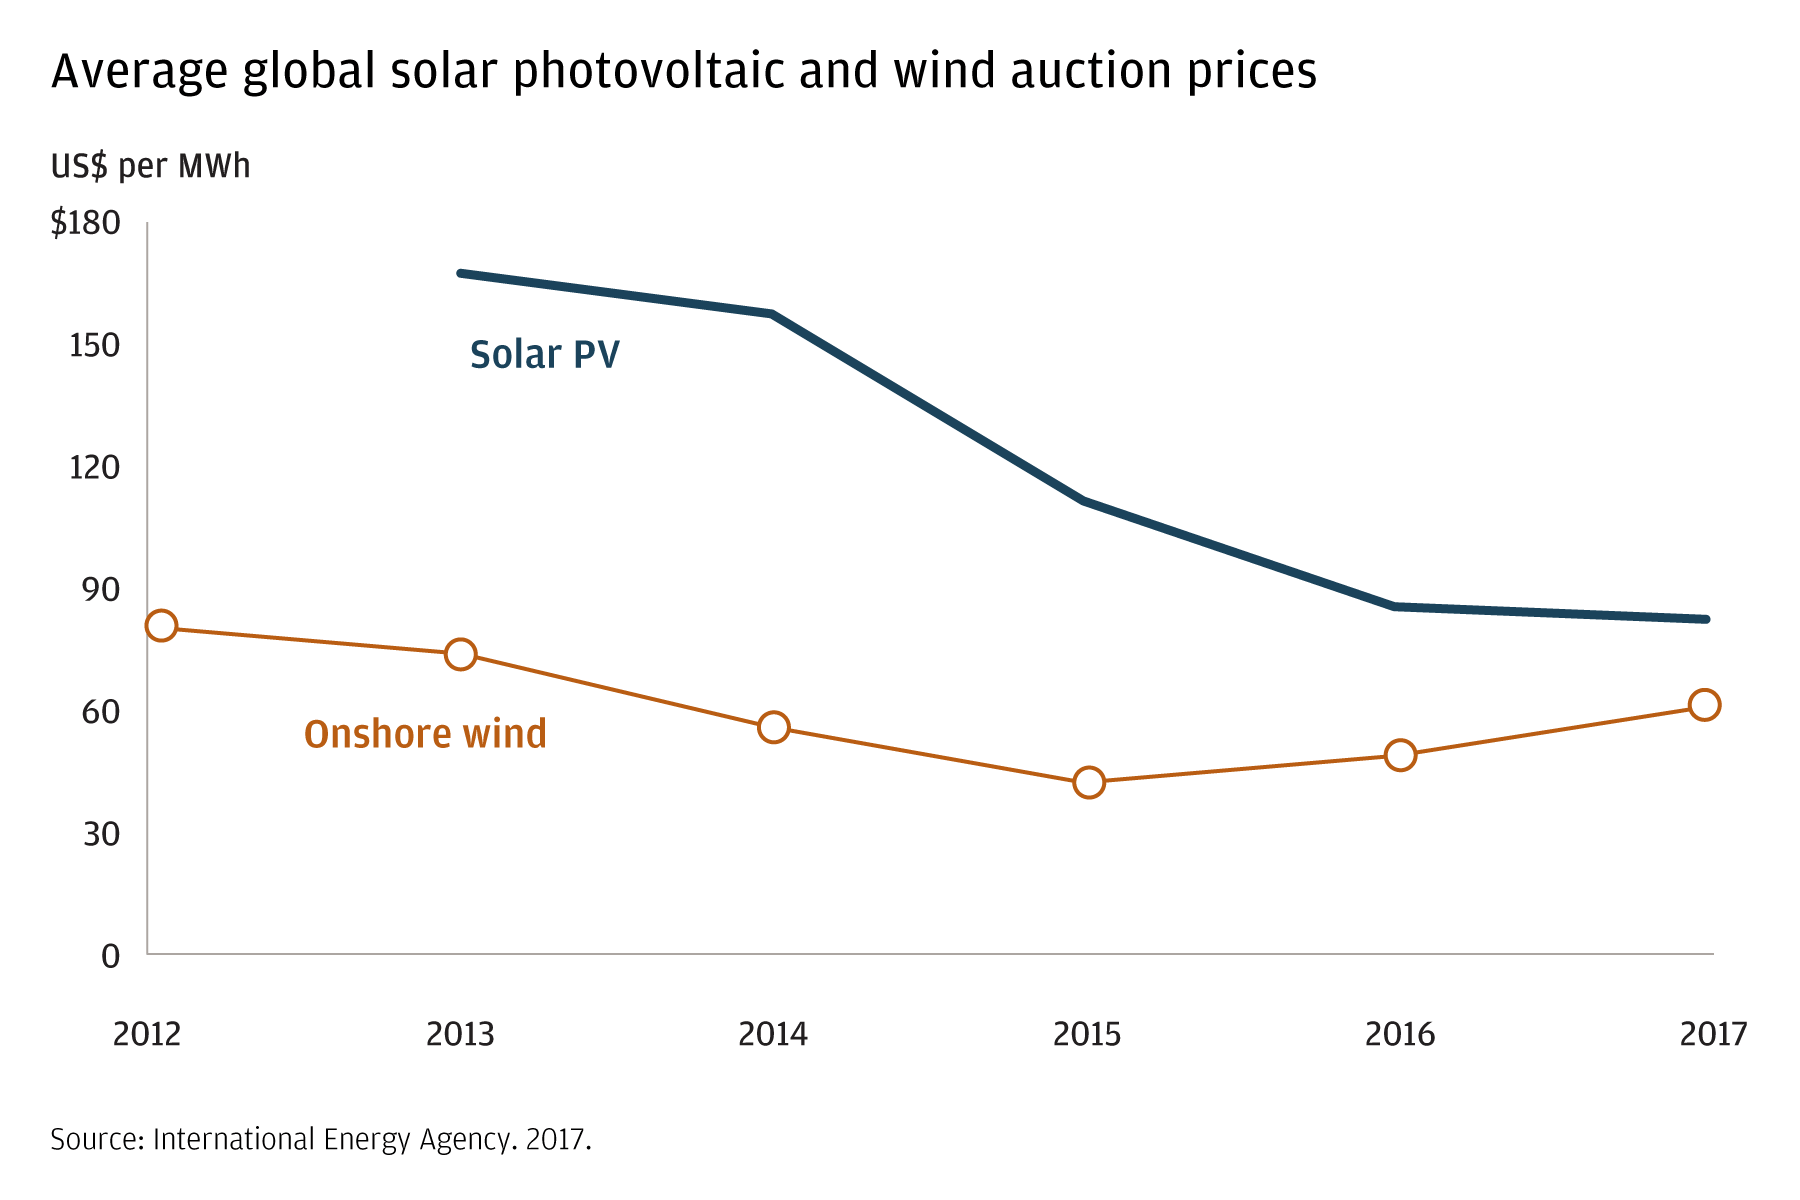 This chart shows changes in the prices paid at auction for wind and solar photovoltaic (in dollars per MWh). Between 2012 and 2017, the prices of both have fallen, with solar PV prices falling more significantly.